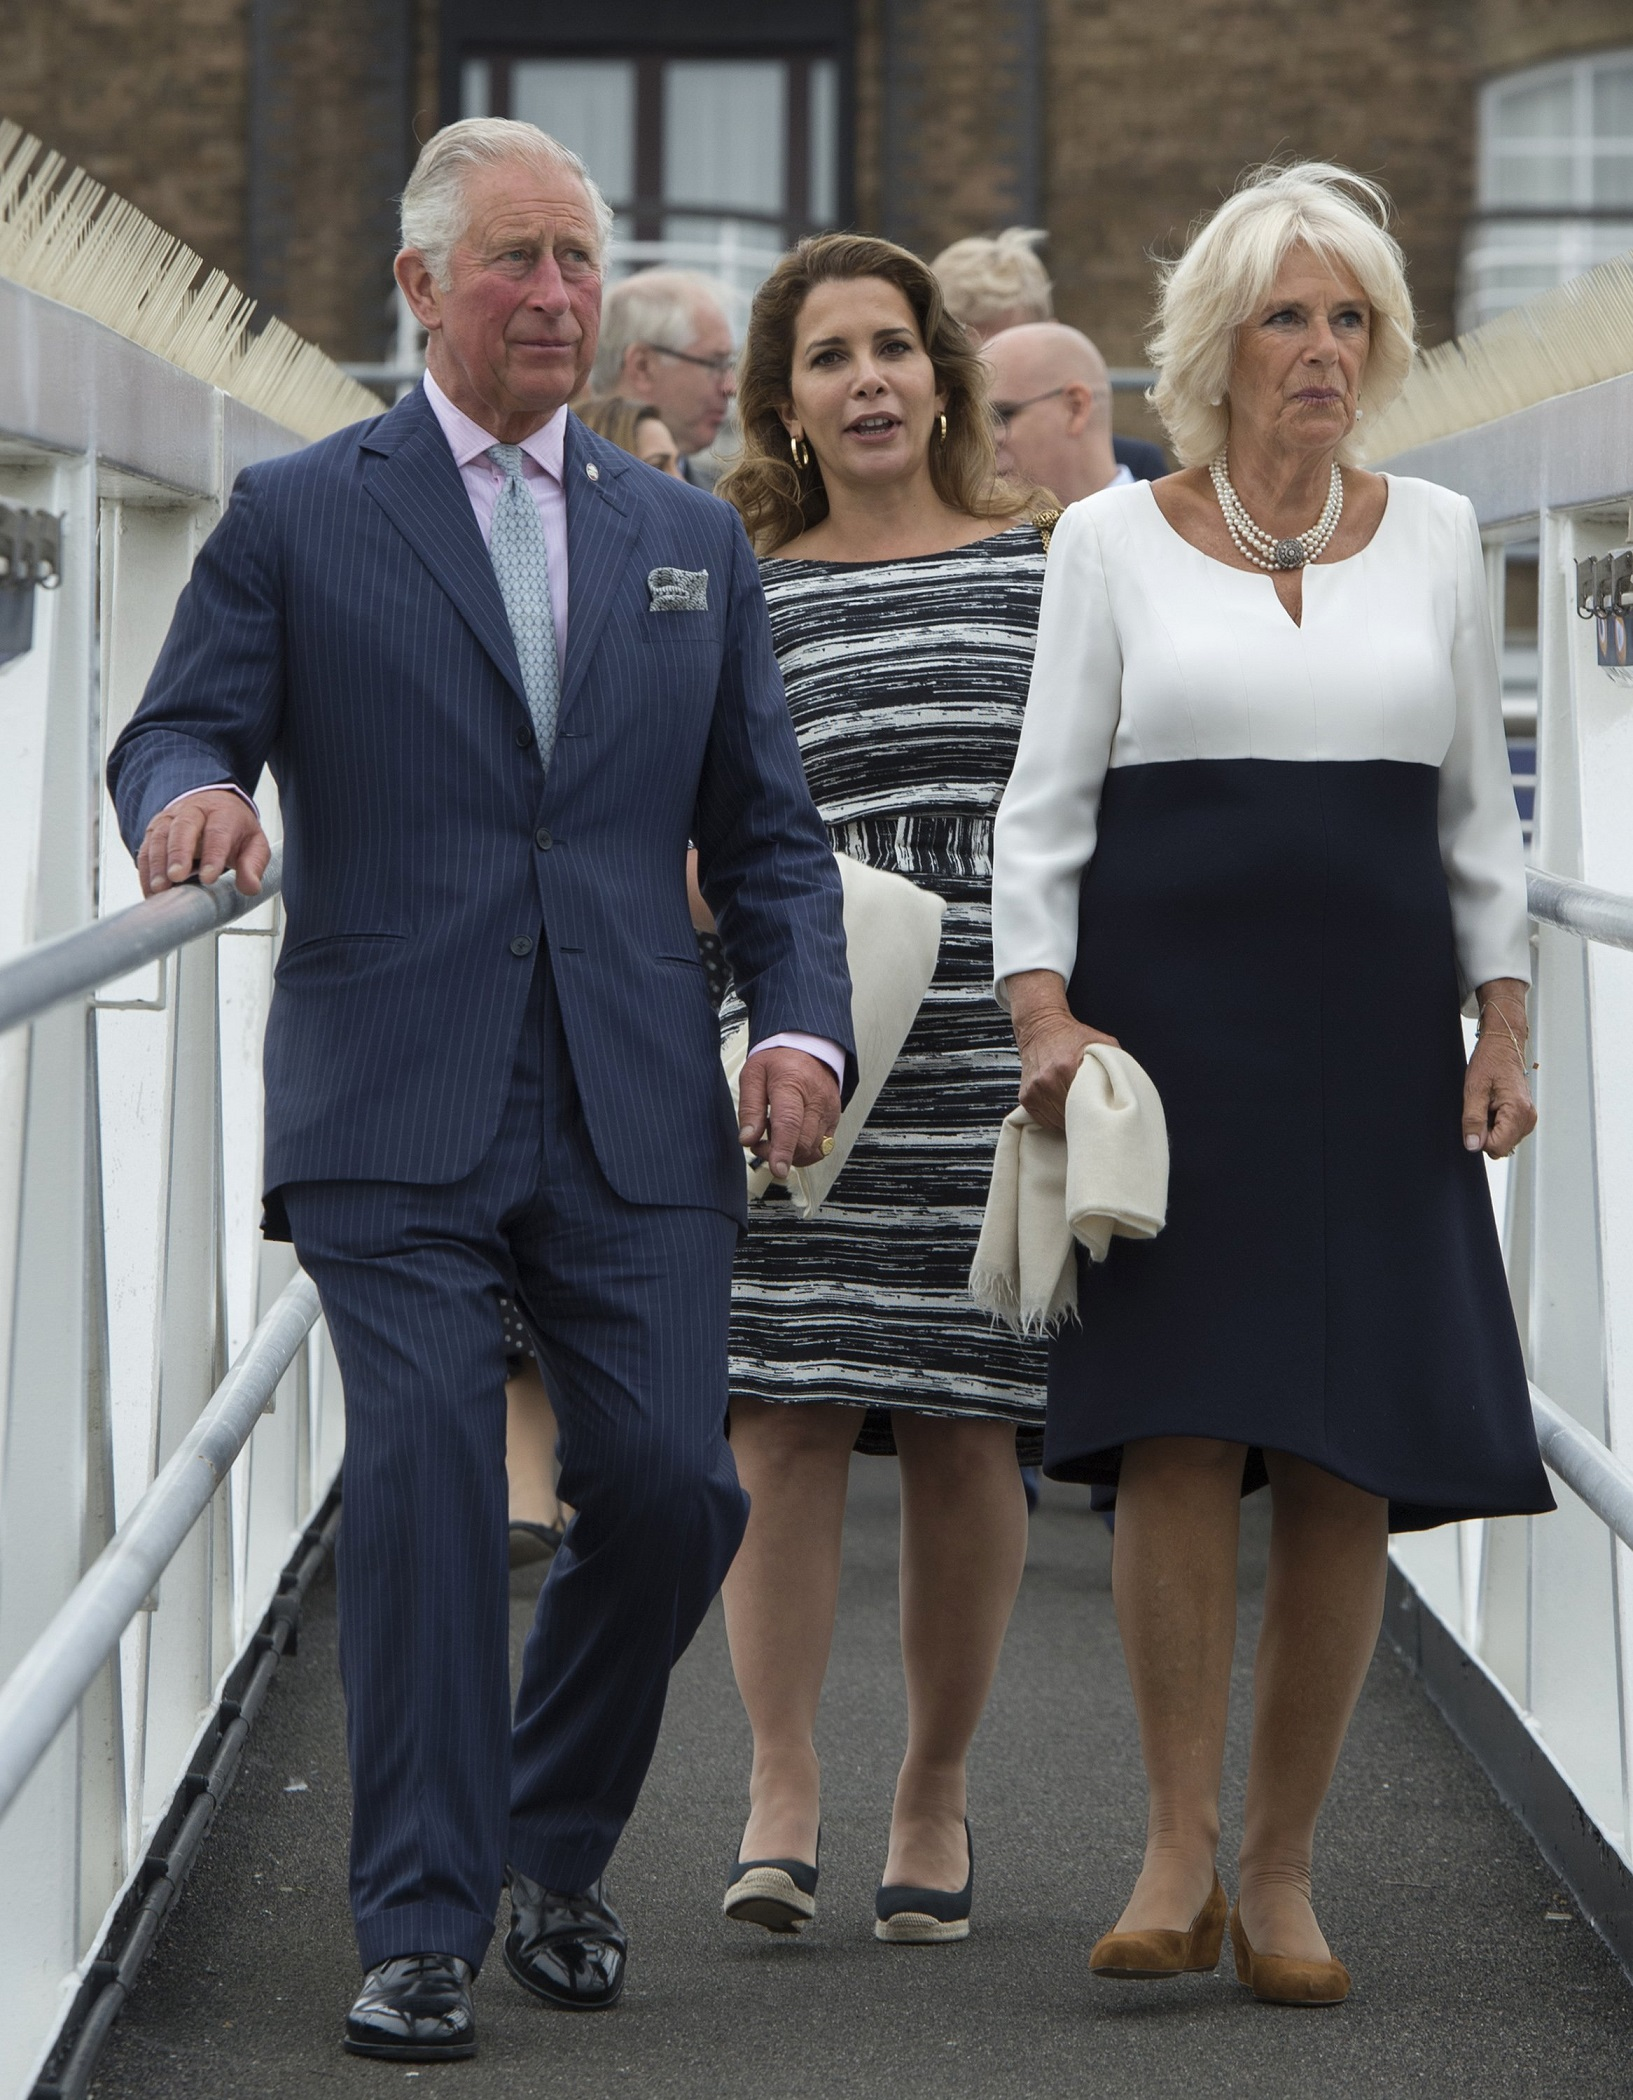 Prince Charles and The Duchess of Cornwall visit the 'Maiden' Yacht